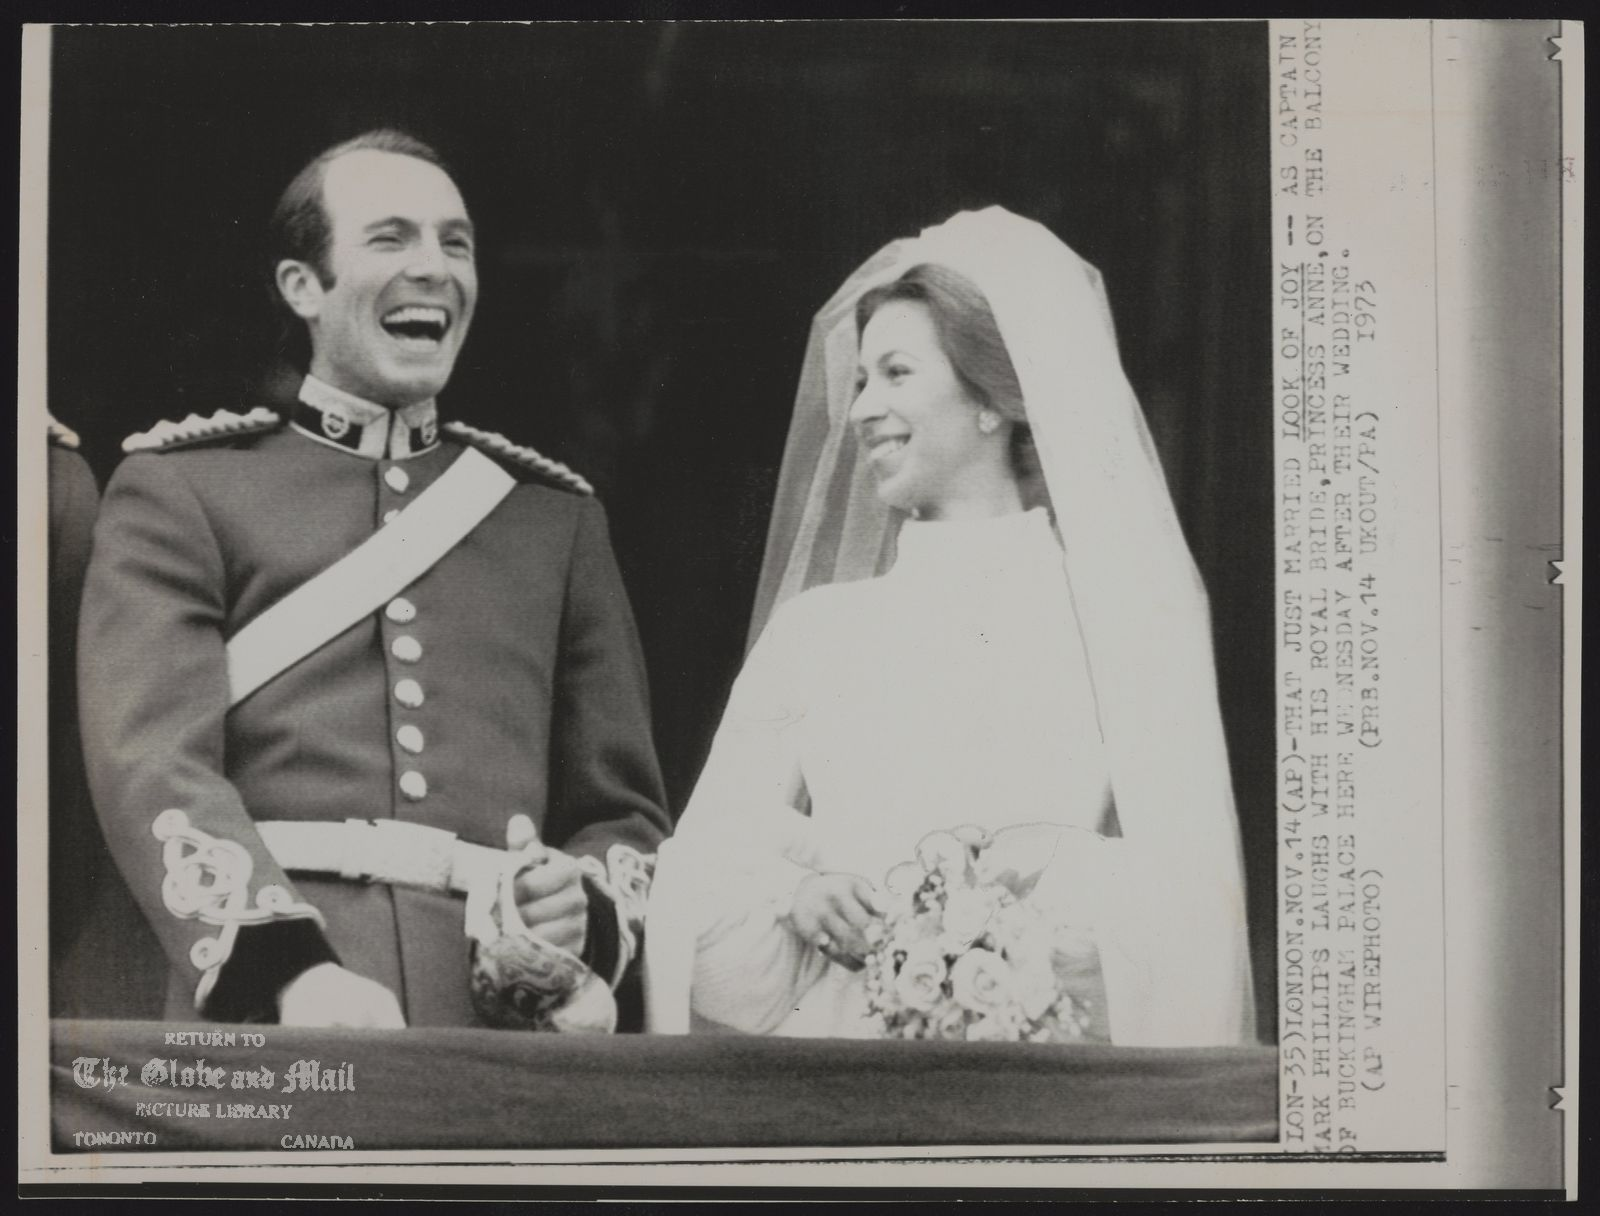 ROYAL FAMILY Gt. Britain Princess Anne (LON-35) LONDON. NOV. 14 (AP)-THAT JUST MARRIED LOOK OF JOY -- AS CAPTAIN MARK PHILLIPS LAUGHS WITH HIS ROYAL BRIDE, PRINCESS ANNE, ON THE BALCONY OF BUCKENGHAM PALACE HERE WEDNESDAY AFTER THEIR WEDDING.